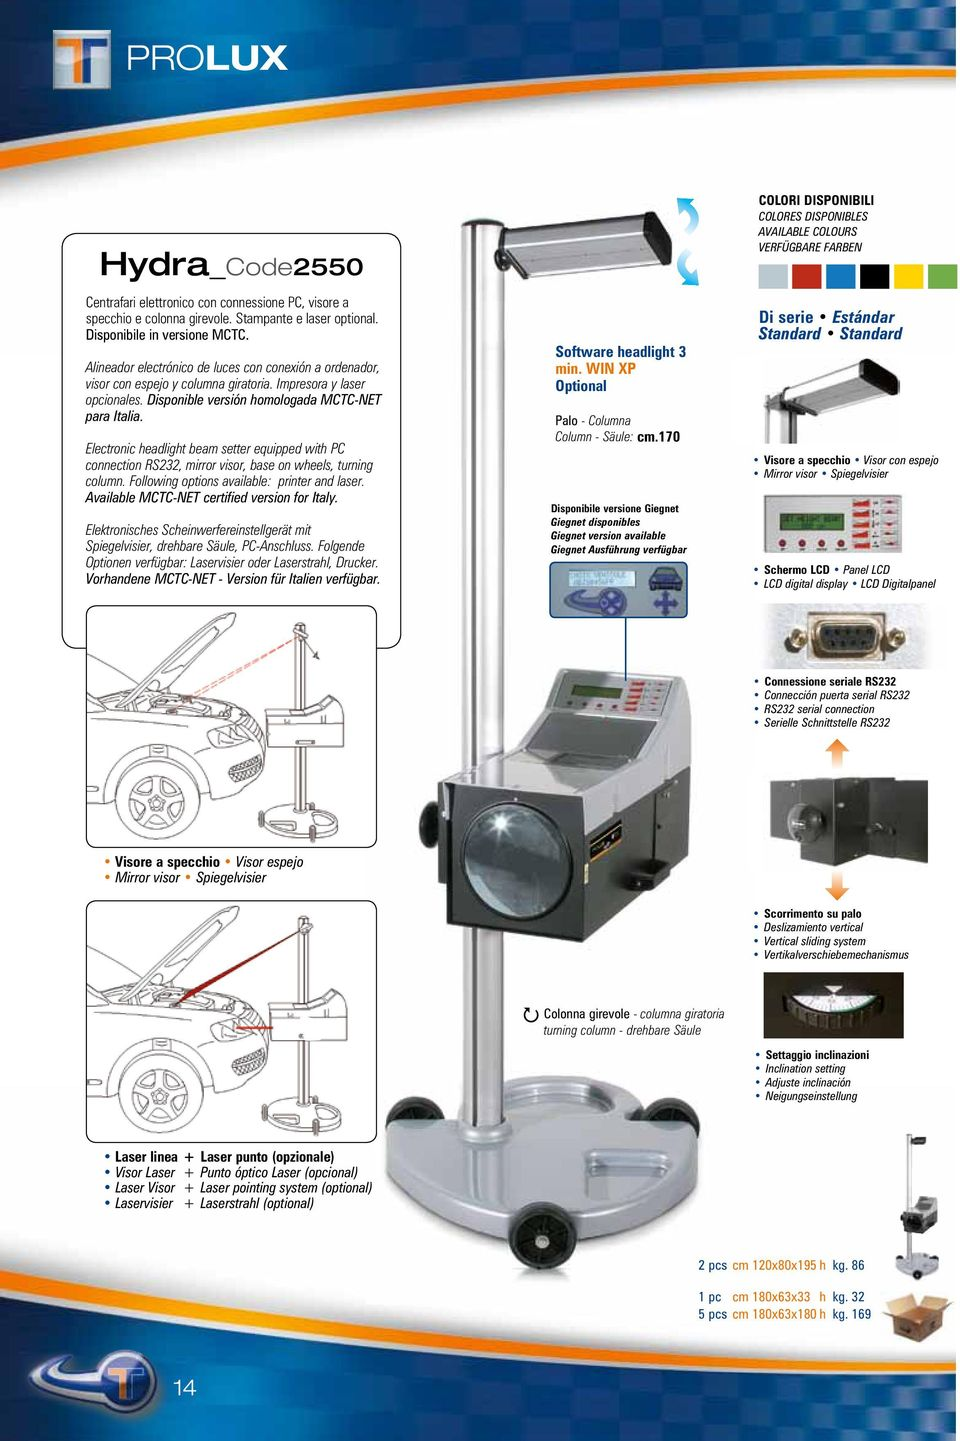 Electronic headlight beam setter equipped with PC connection RS232, mirror visor, base on wheels, turning column. Following options available: printer and laser.